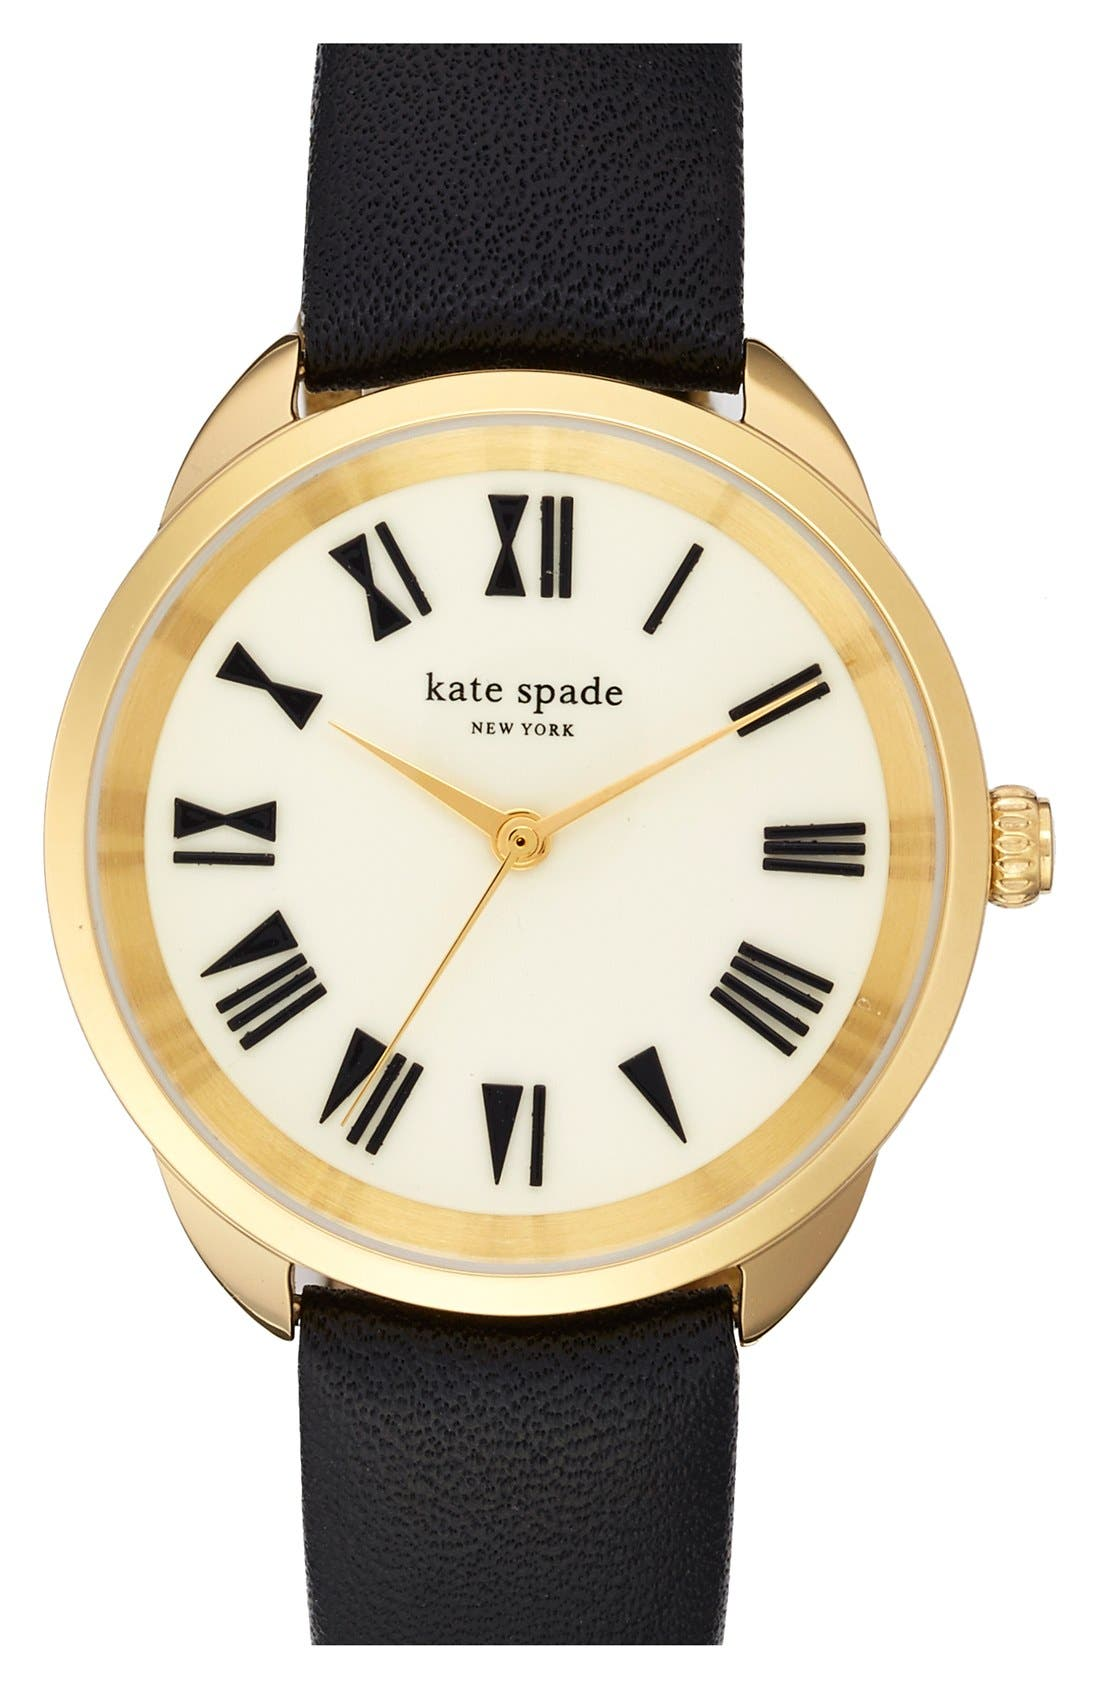 KATE SPADE NEW YORK, 'crosstown' leather strap watch, 34mm, Main thumbnail 1, color, 001